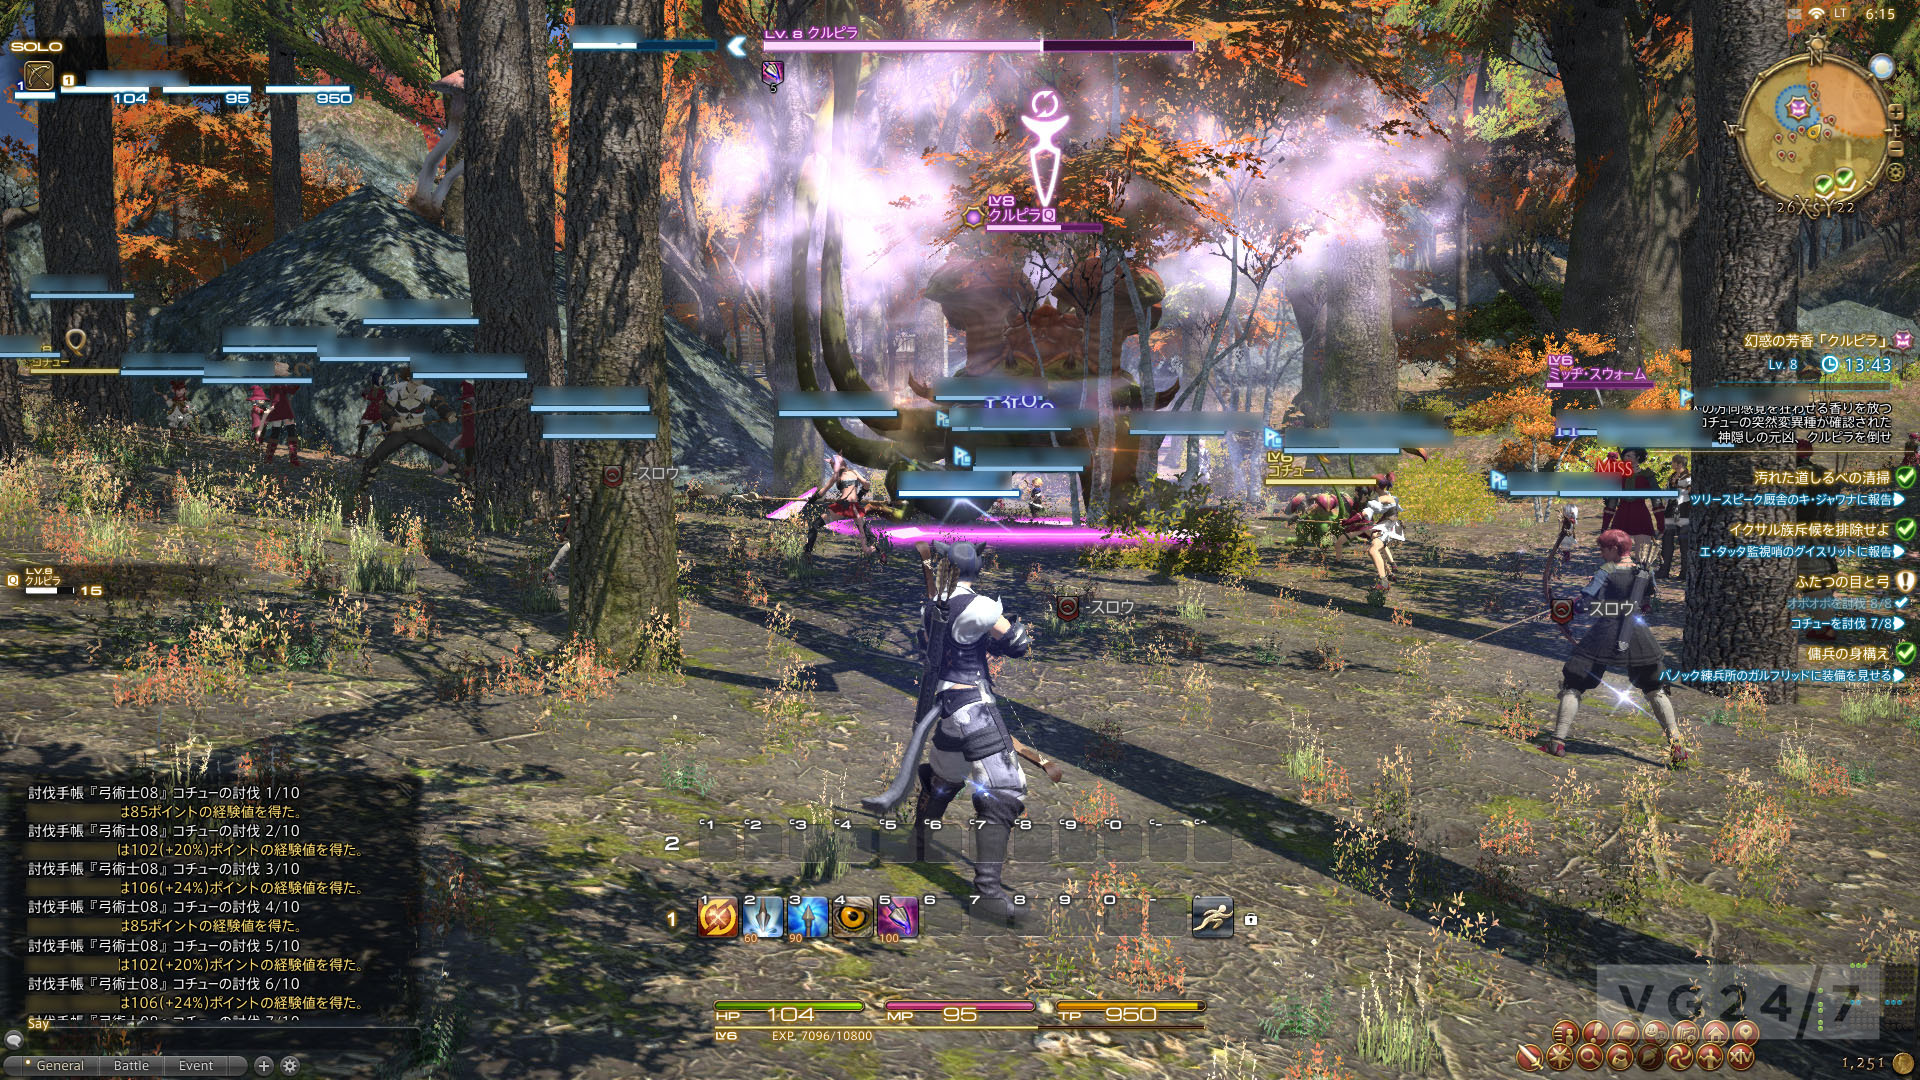 Final Fantasy 14 Beta Weekend Spawns A Barrage Of New Gameplay Images VG247